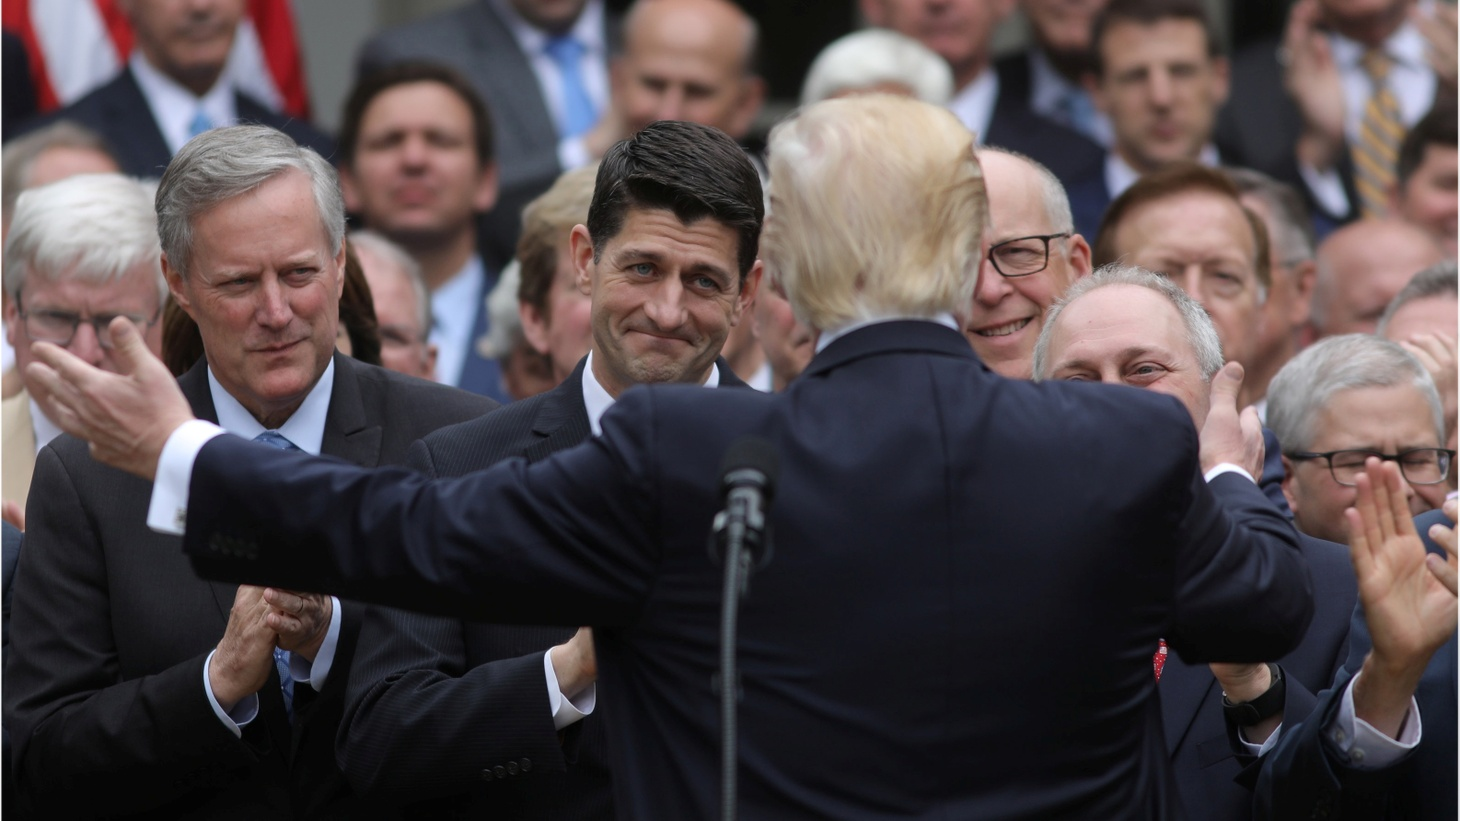 """House Speaker Paul Ryan and Republican party leadership corralled just enough votes to pass the health care bill -- 217 to 213. All the House Democrats and 20 Republicans voted against the bill. Some of California's Republican delegation had been undecided until today, but in the end, all of them voted """"yes."""" The bill allows states to scrap many of the protections provided under Obamacare."""